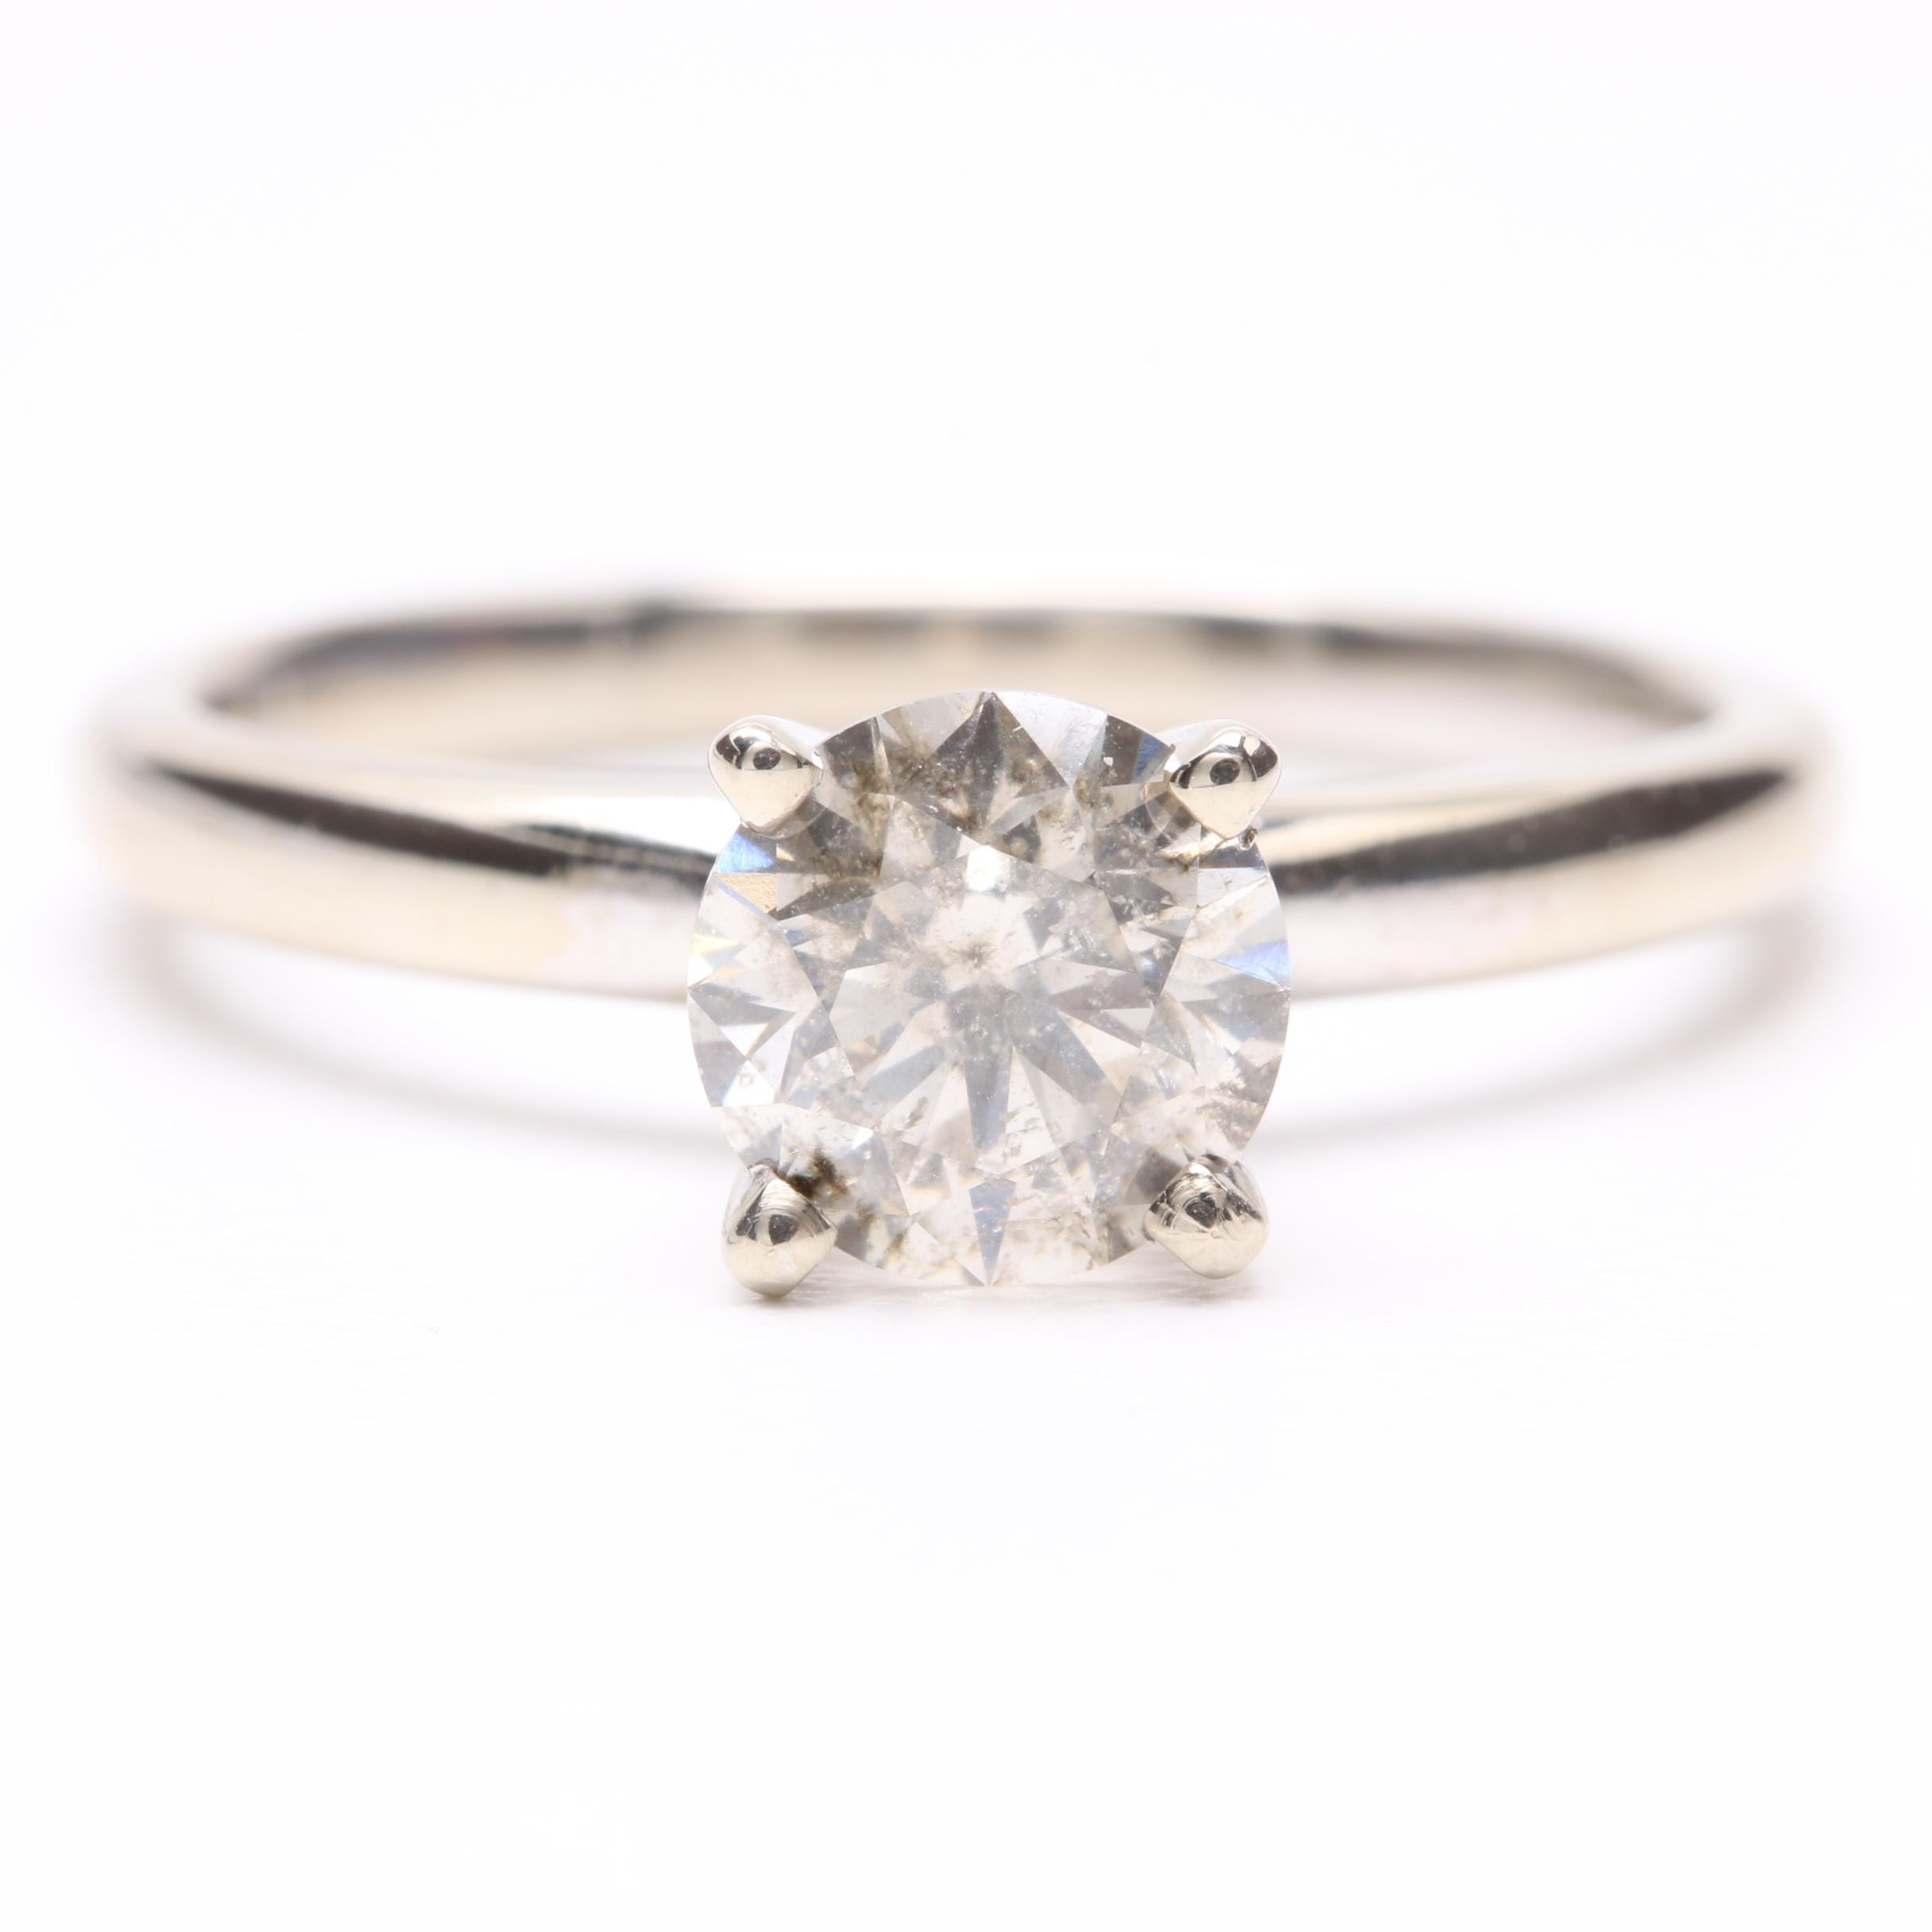 14K White Gold 1.02 CT Diamond Solitaire Ring